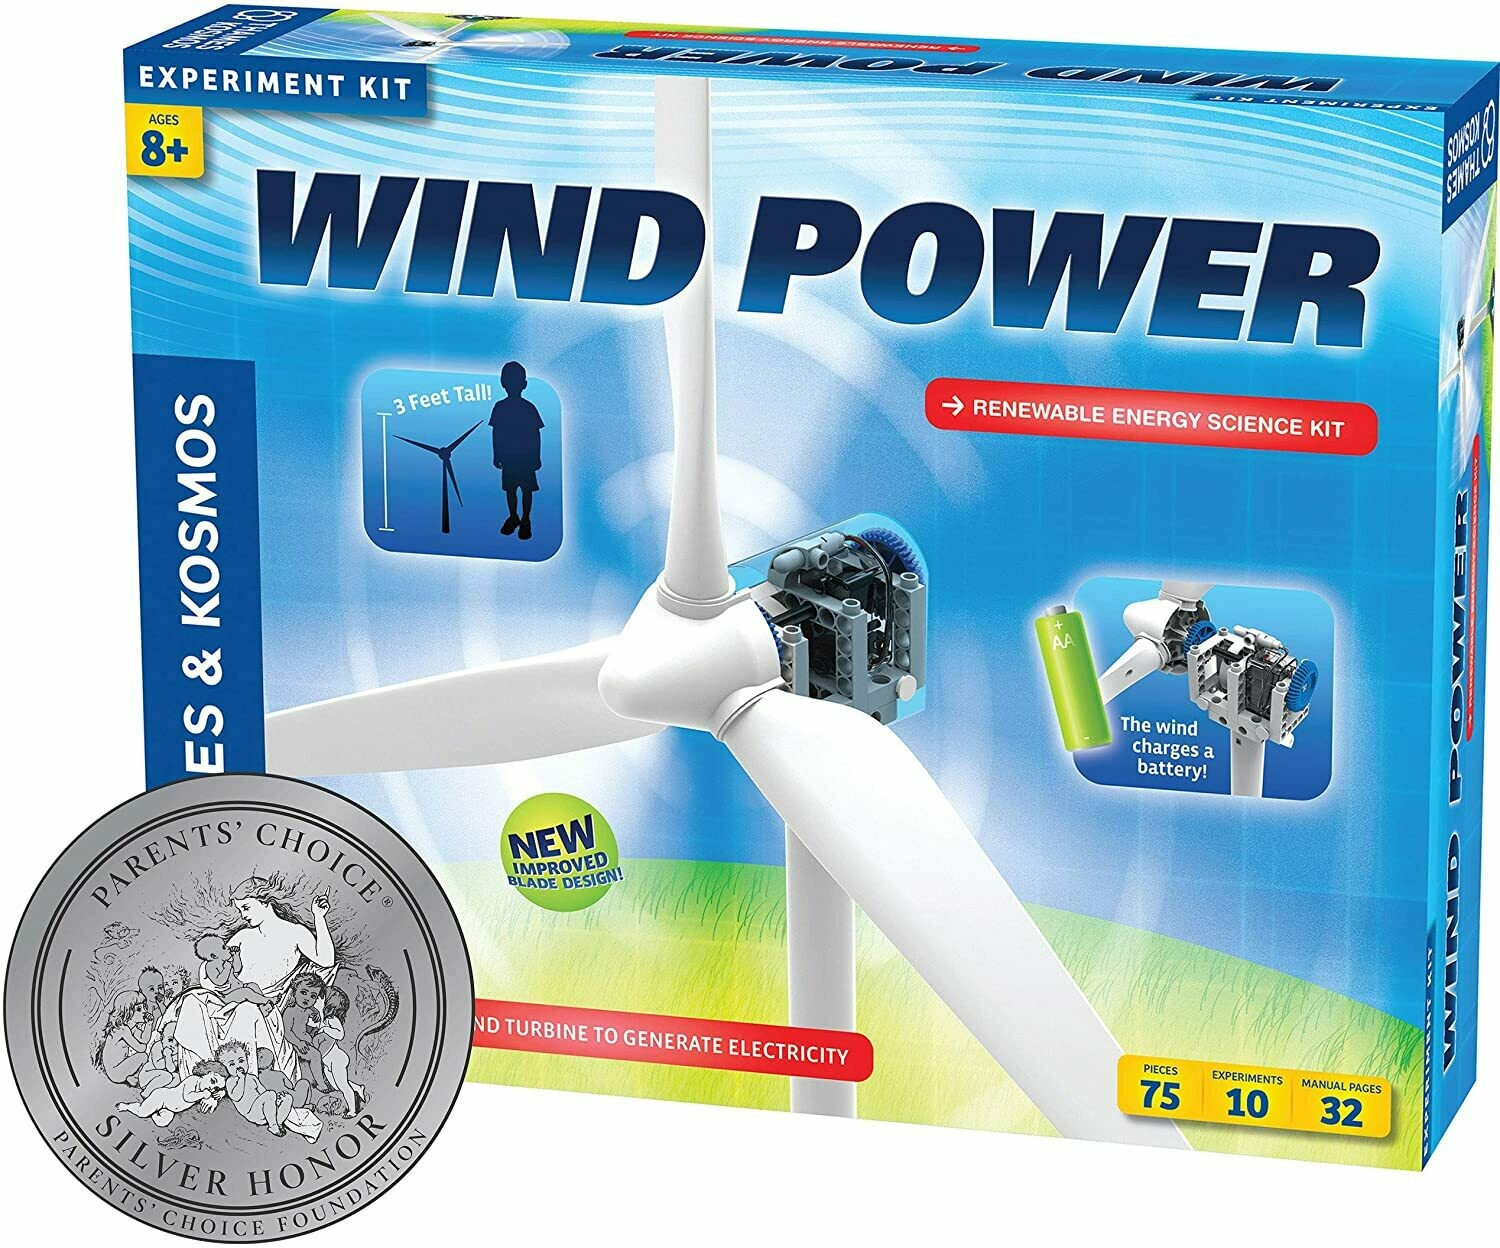 Wind Power - Experiment Kit - Thames & Kosmos